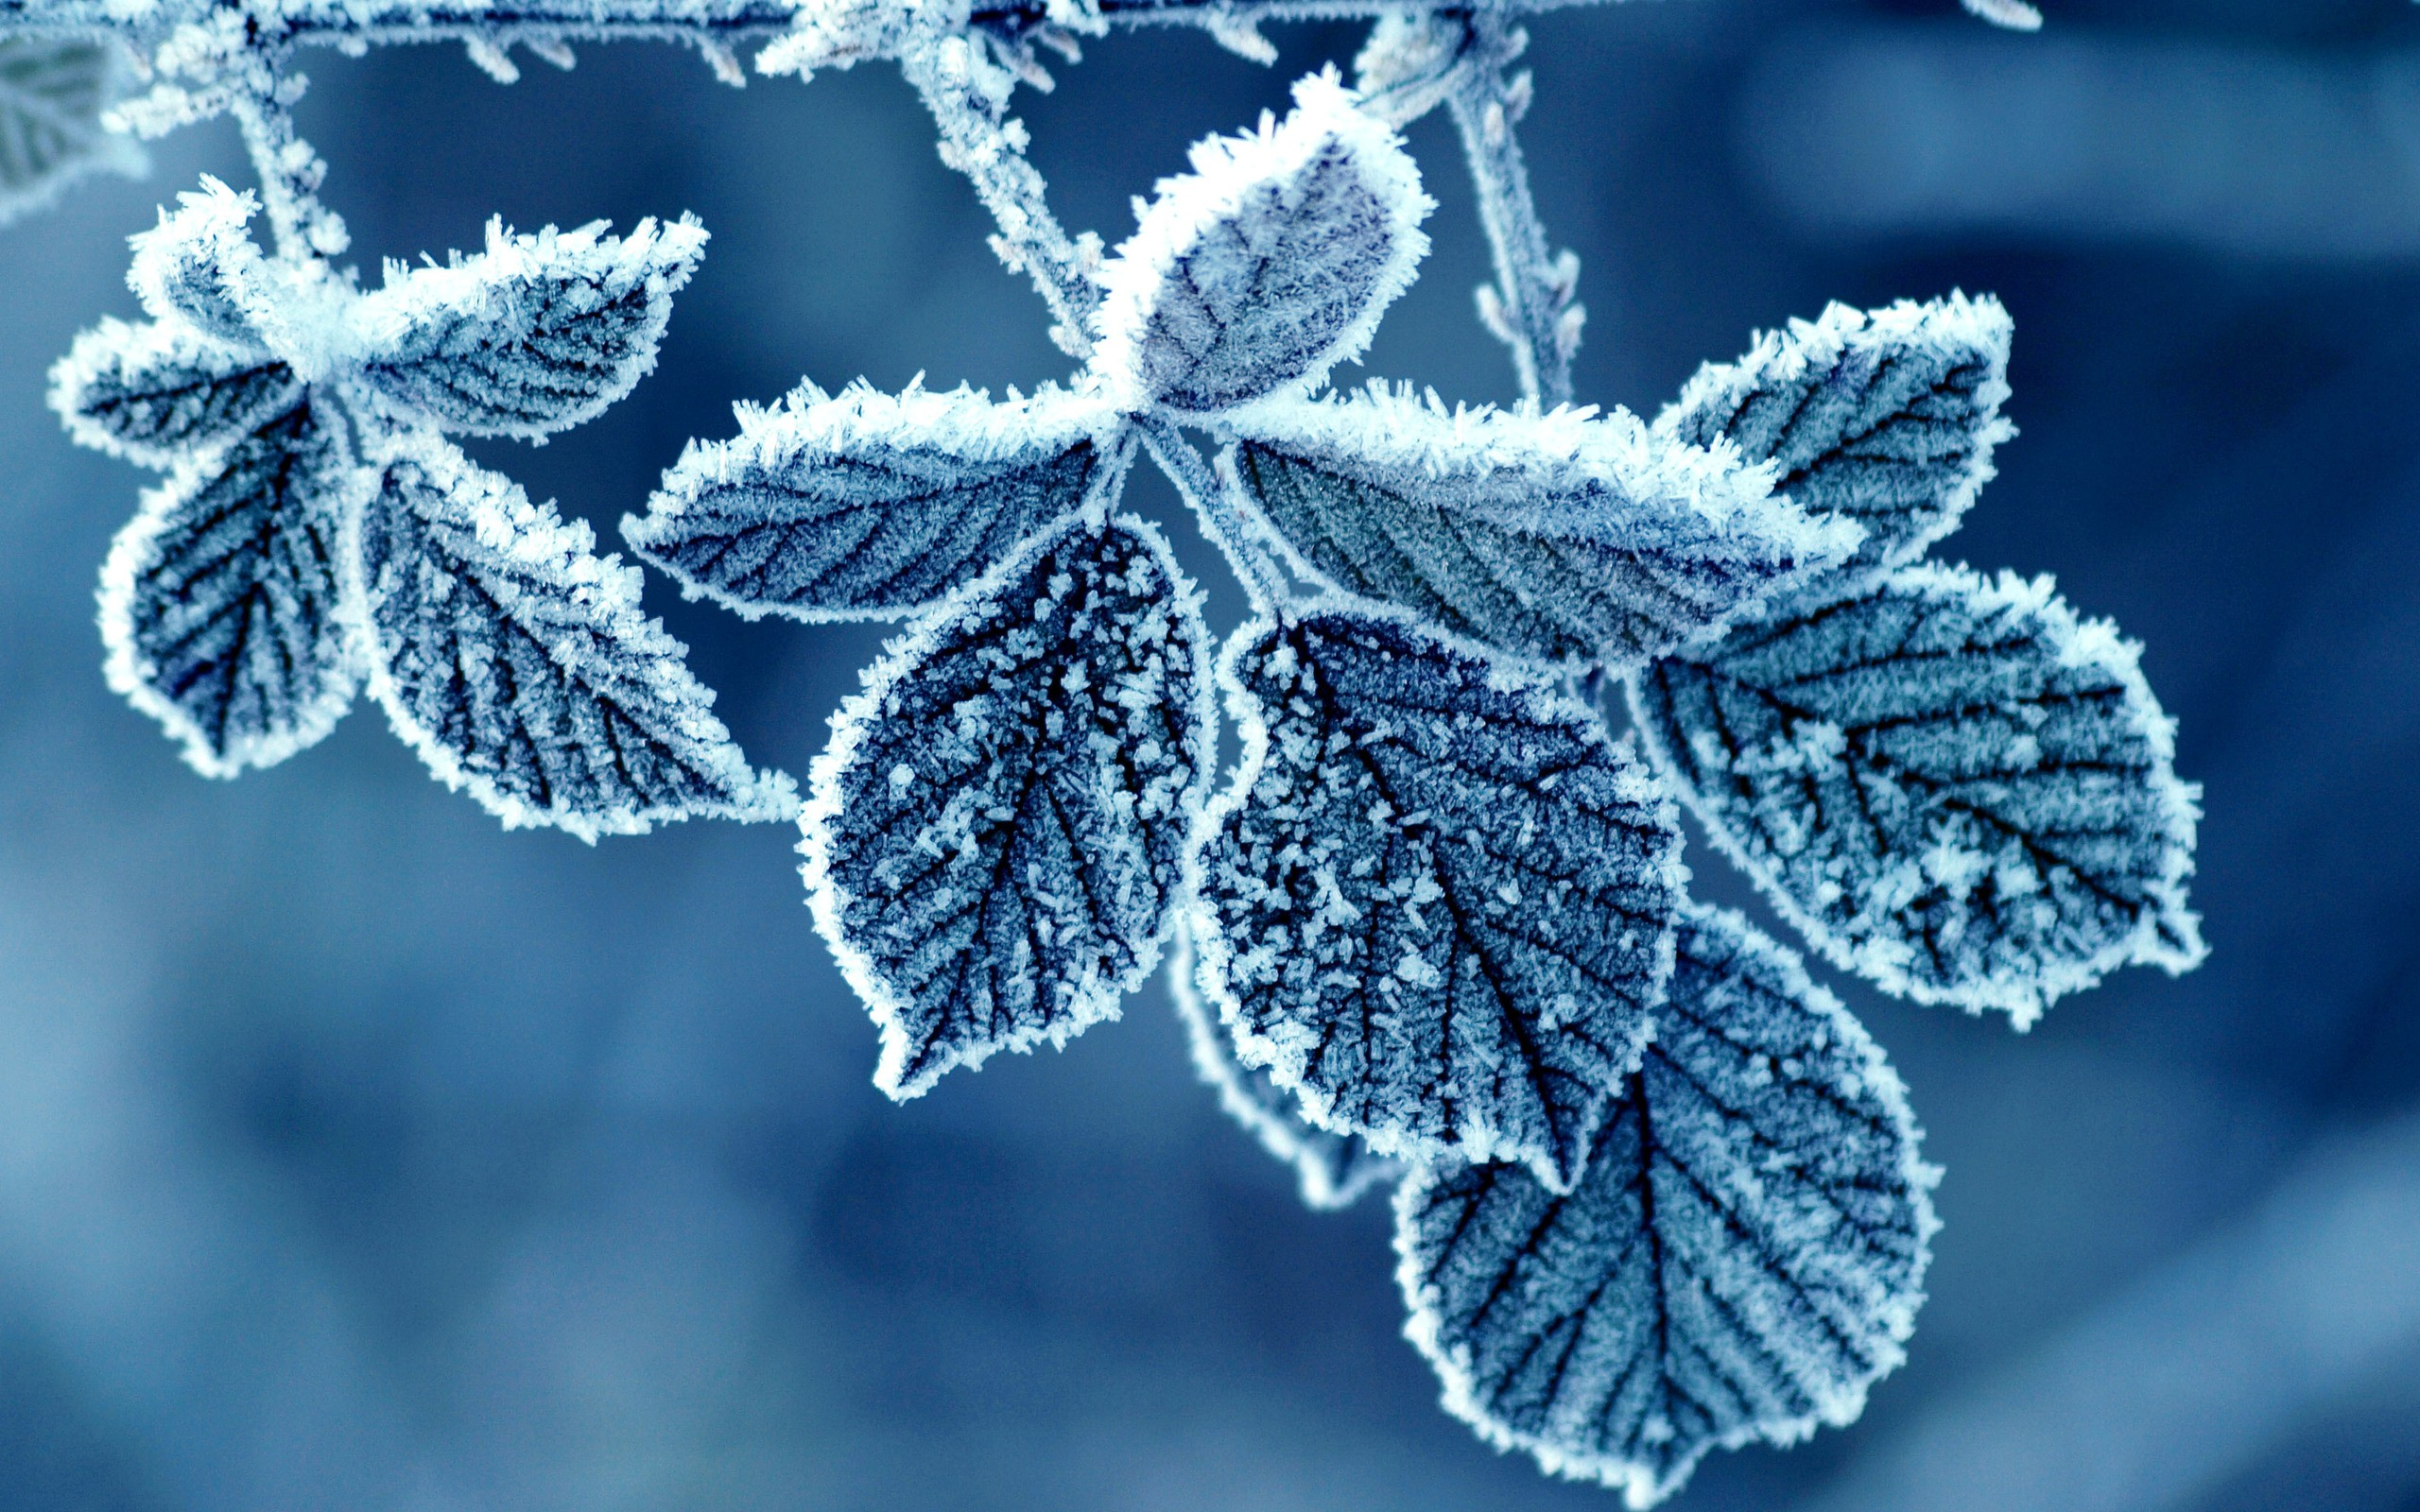 frost-blue-leaves-winter-nature